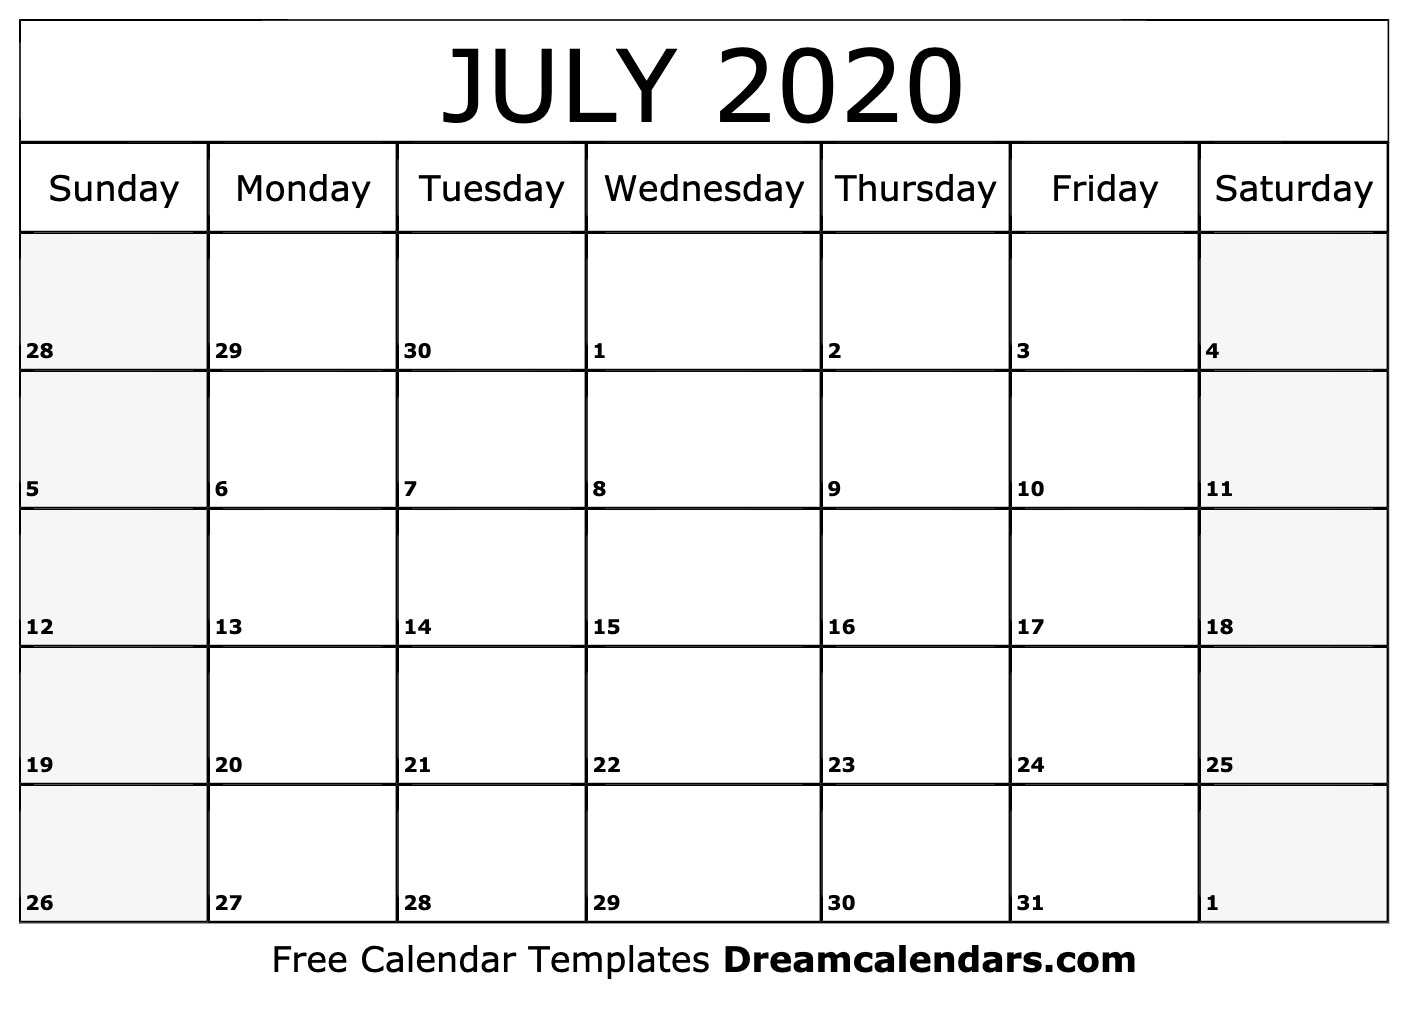 Ko-Fi - Printable July 2020 Calendar - Ko-Fi ❤️ Where